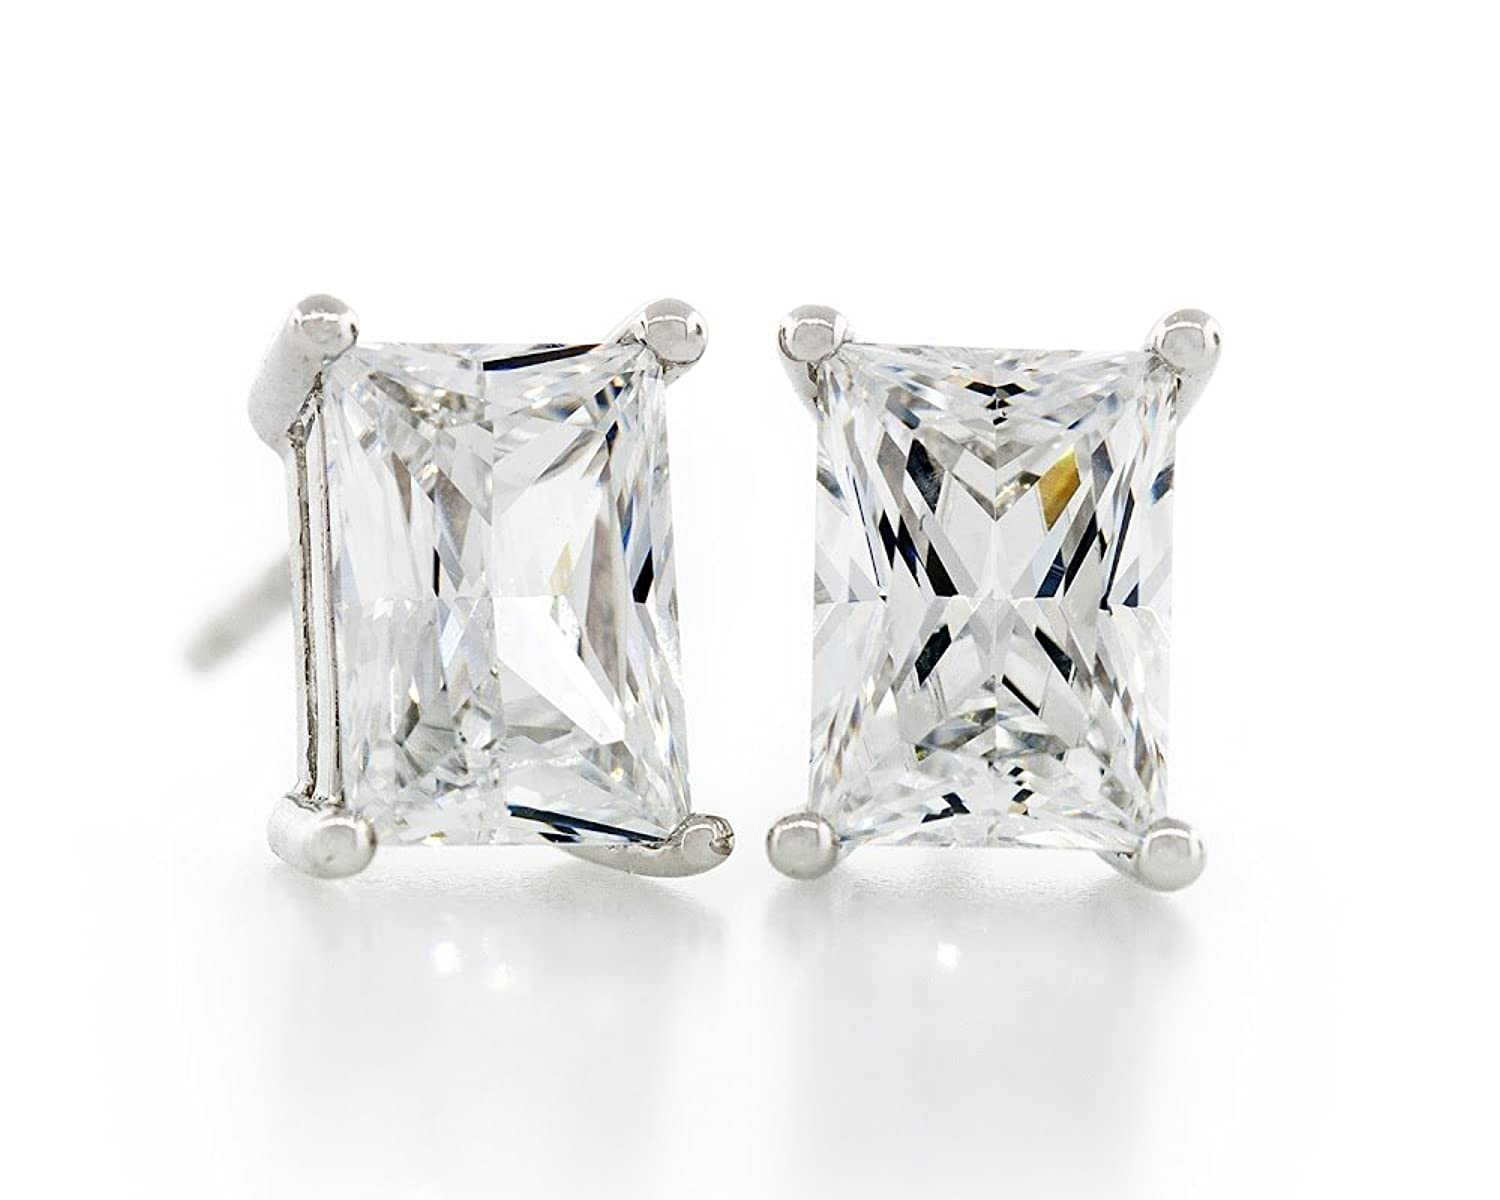 Acacia Jewelry 2.50 Carat (ctw) Rectangle Shape Princess Baguette Diamond Cut Crystal White 7.5x5.5mm Crystal CZ 925 Sterling Silver Heavy Mounting Stud Earrings Rhodium Plated